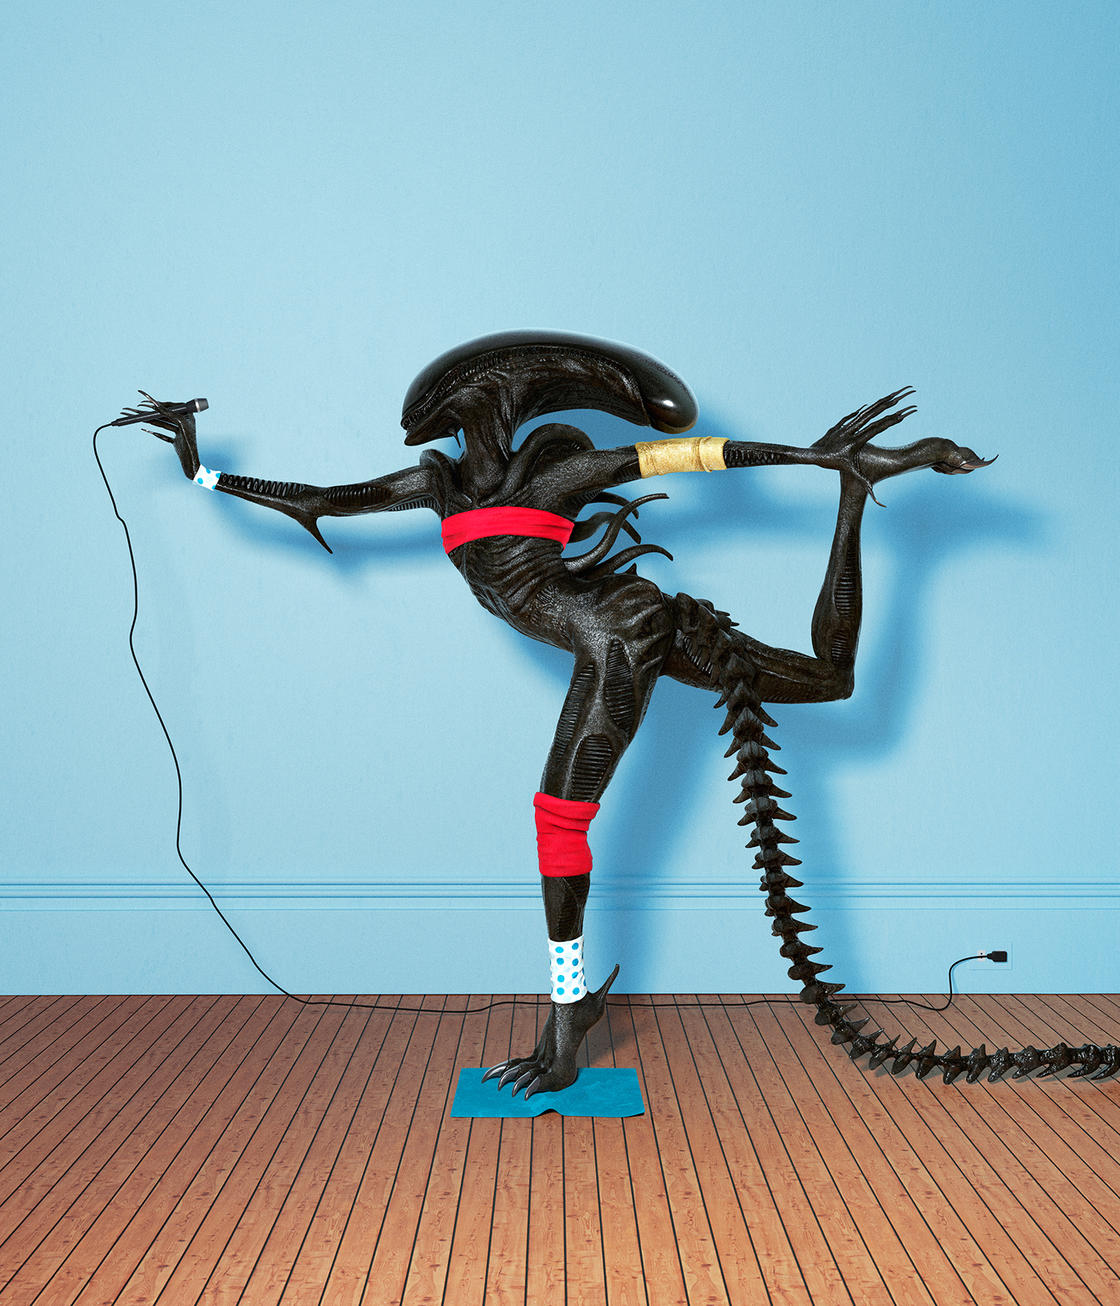 Human Sushi – The surreal and twisted visuals by Masson and Girotto